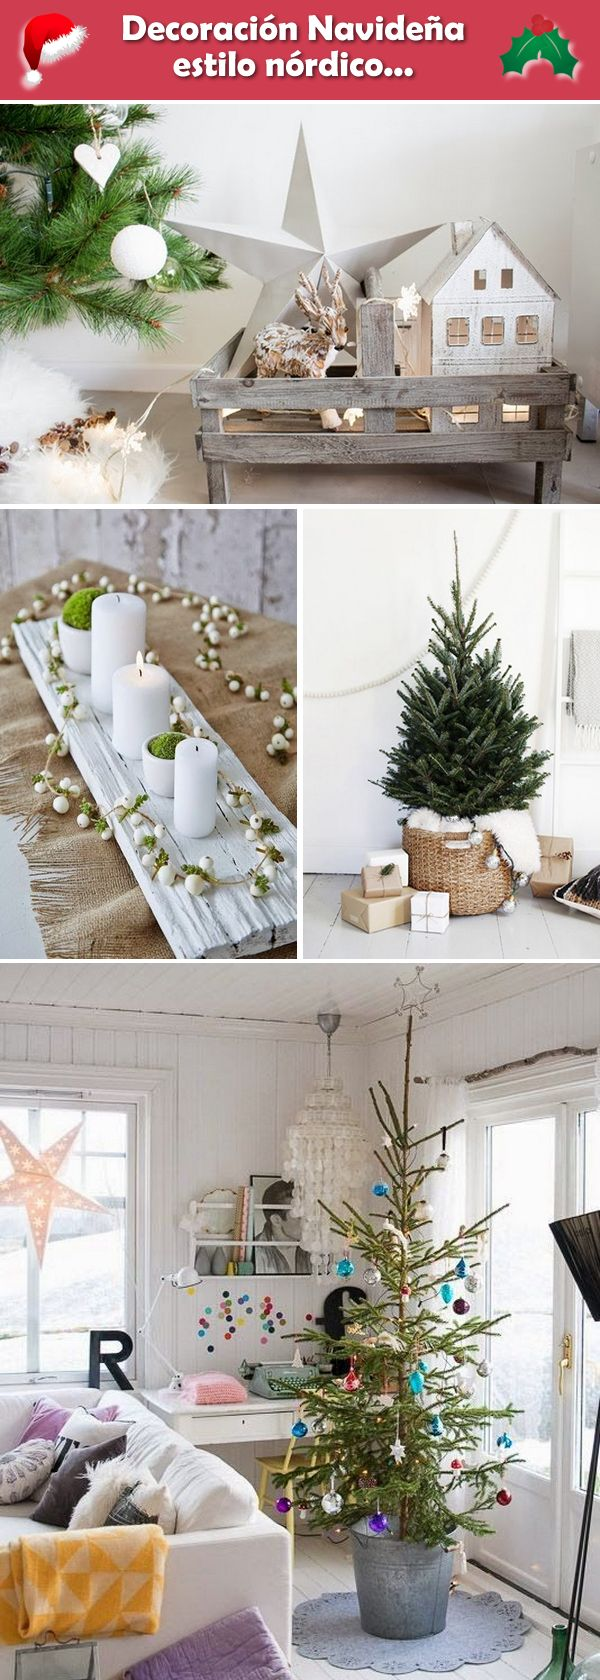 M s de 25 ideas incre bles sobre navidad escandinava en for Decoracion navidena minimalista